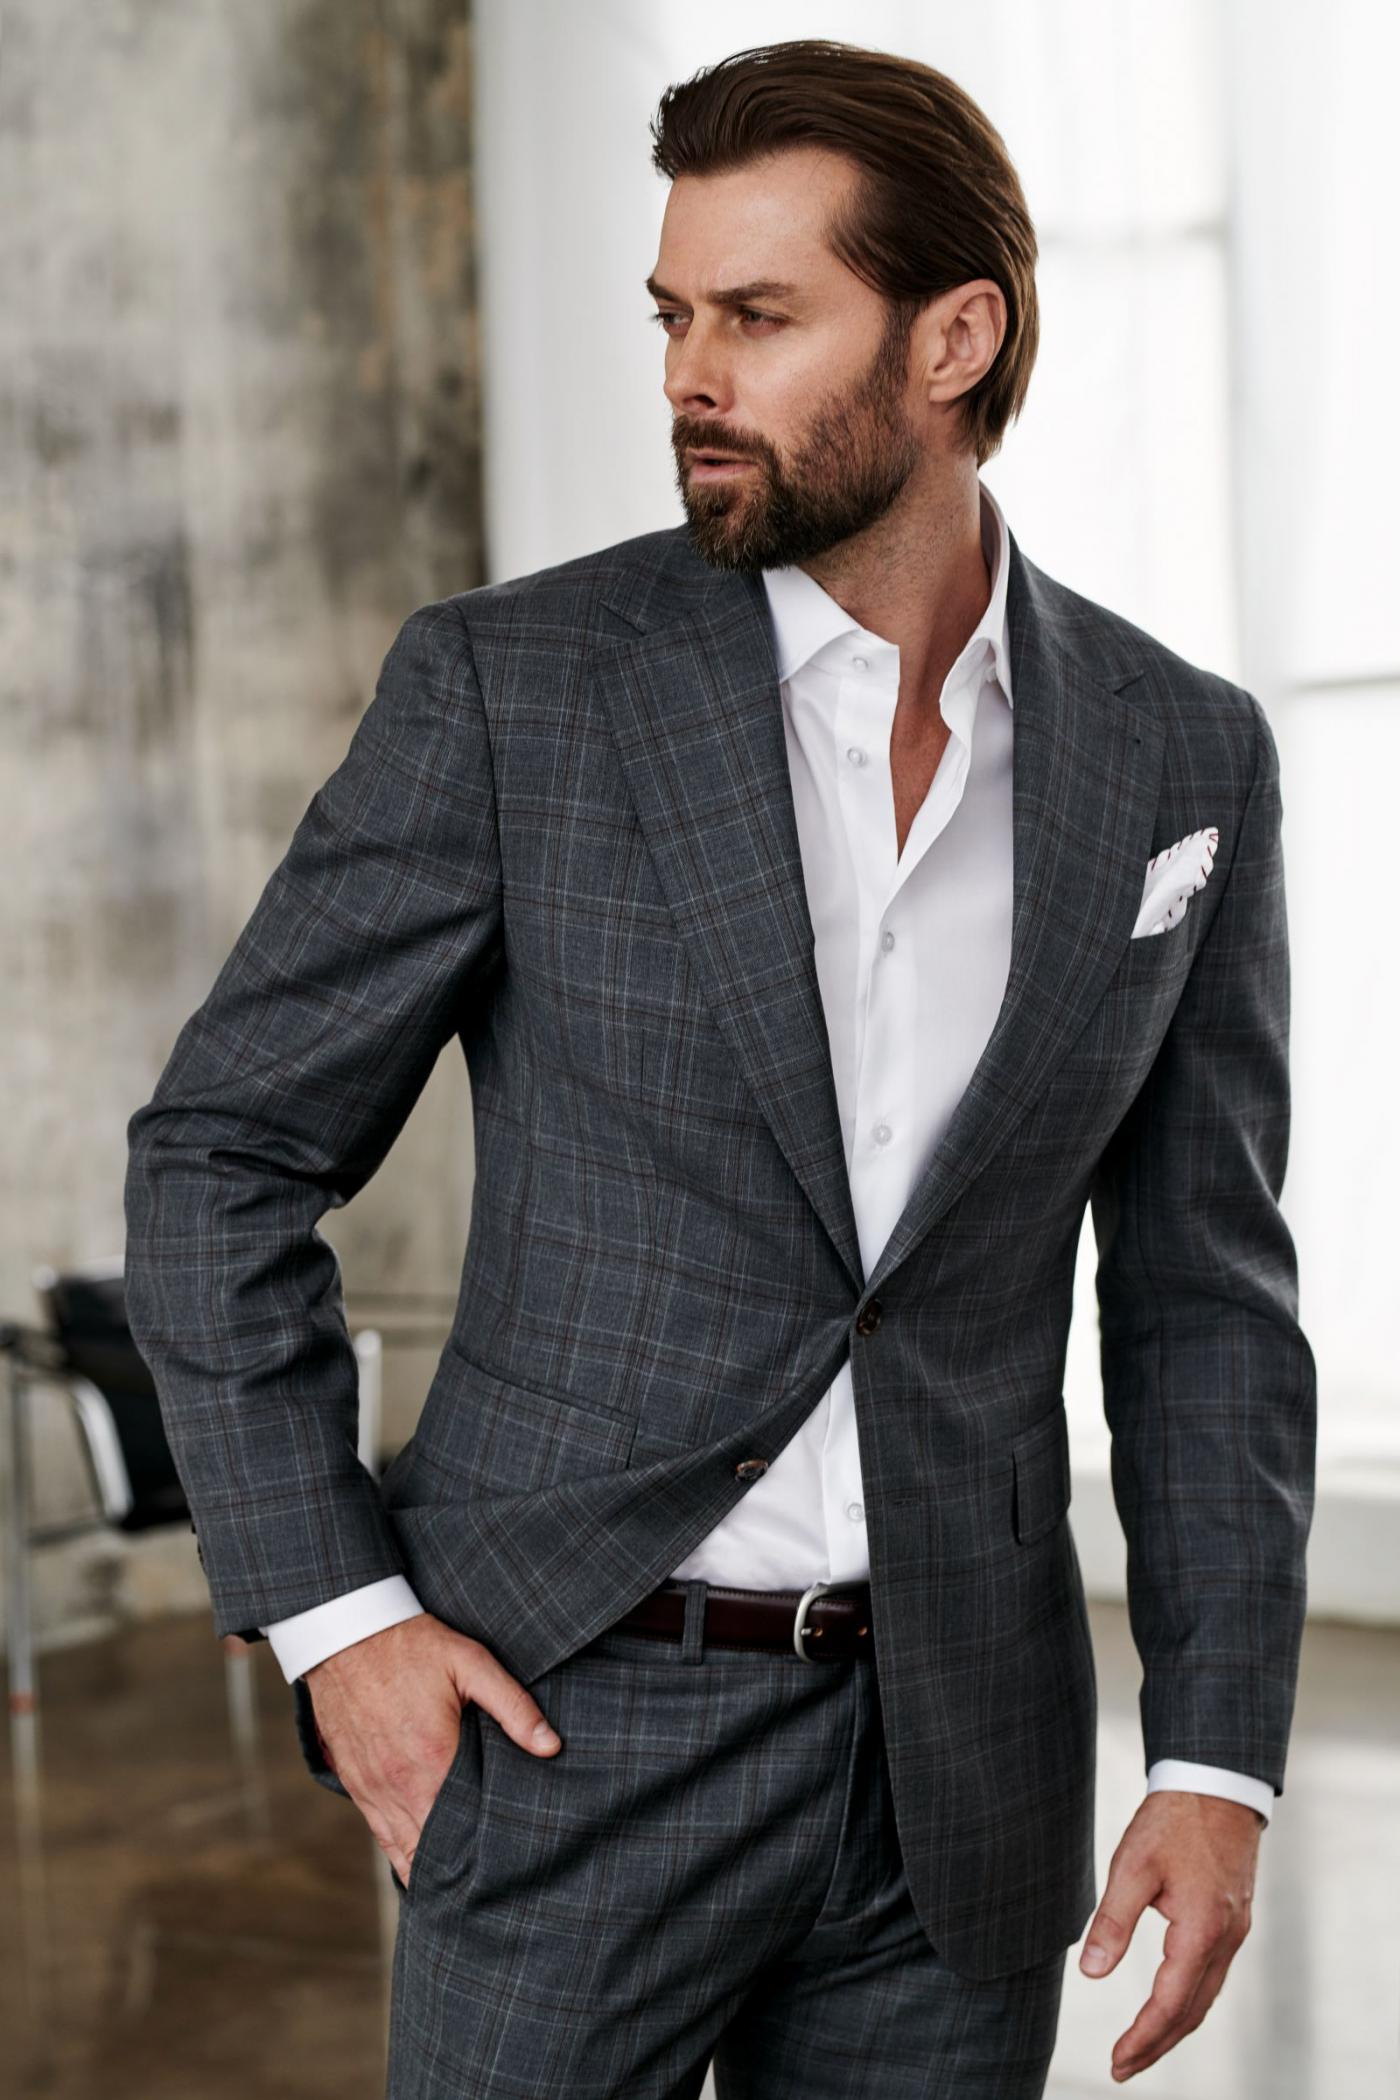 Squared grey men's suit with white shirt for every day style